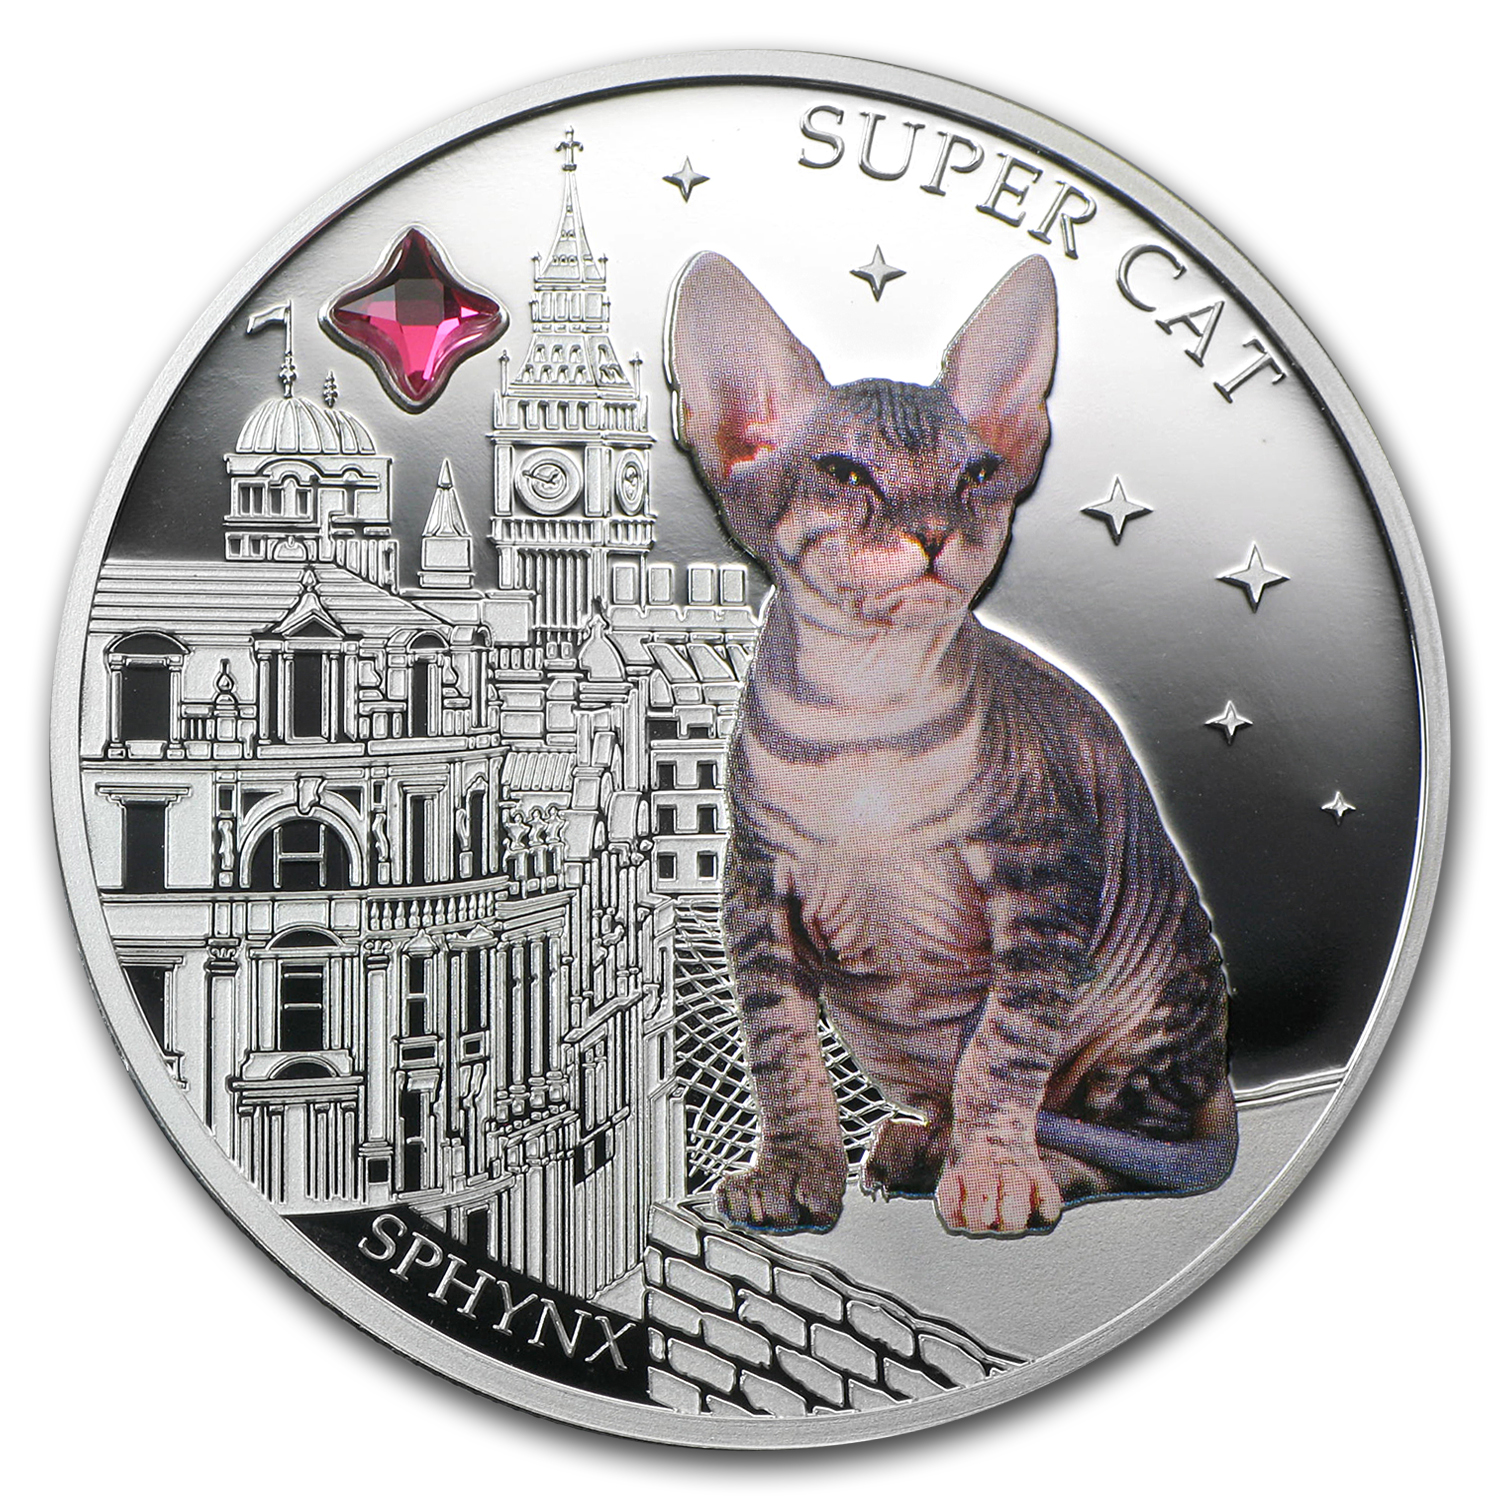 Fiji 2013 Silver Dogs & Cats Series - Super Cat - Sphynx